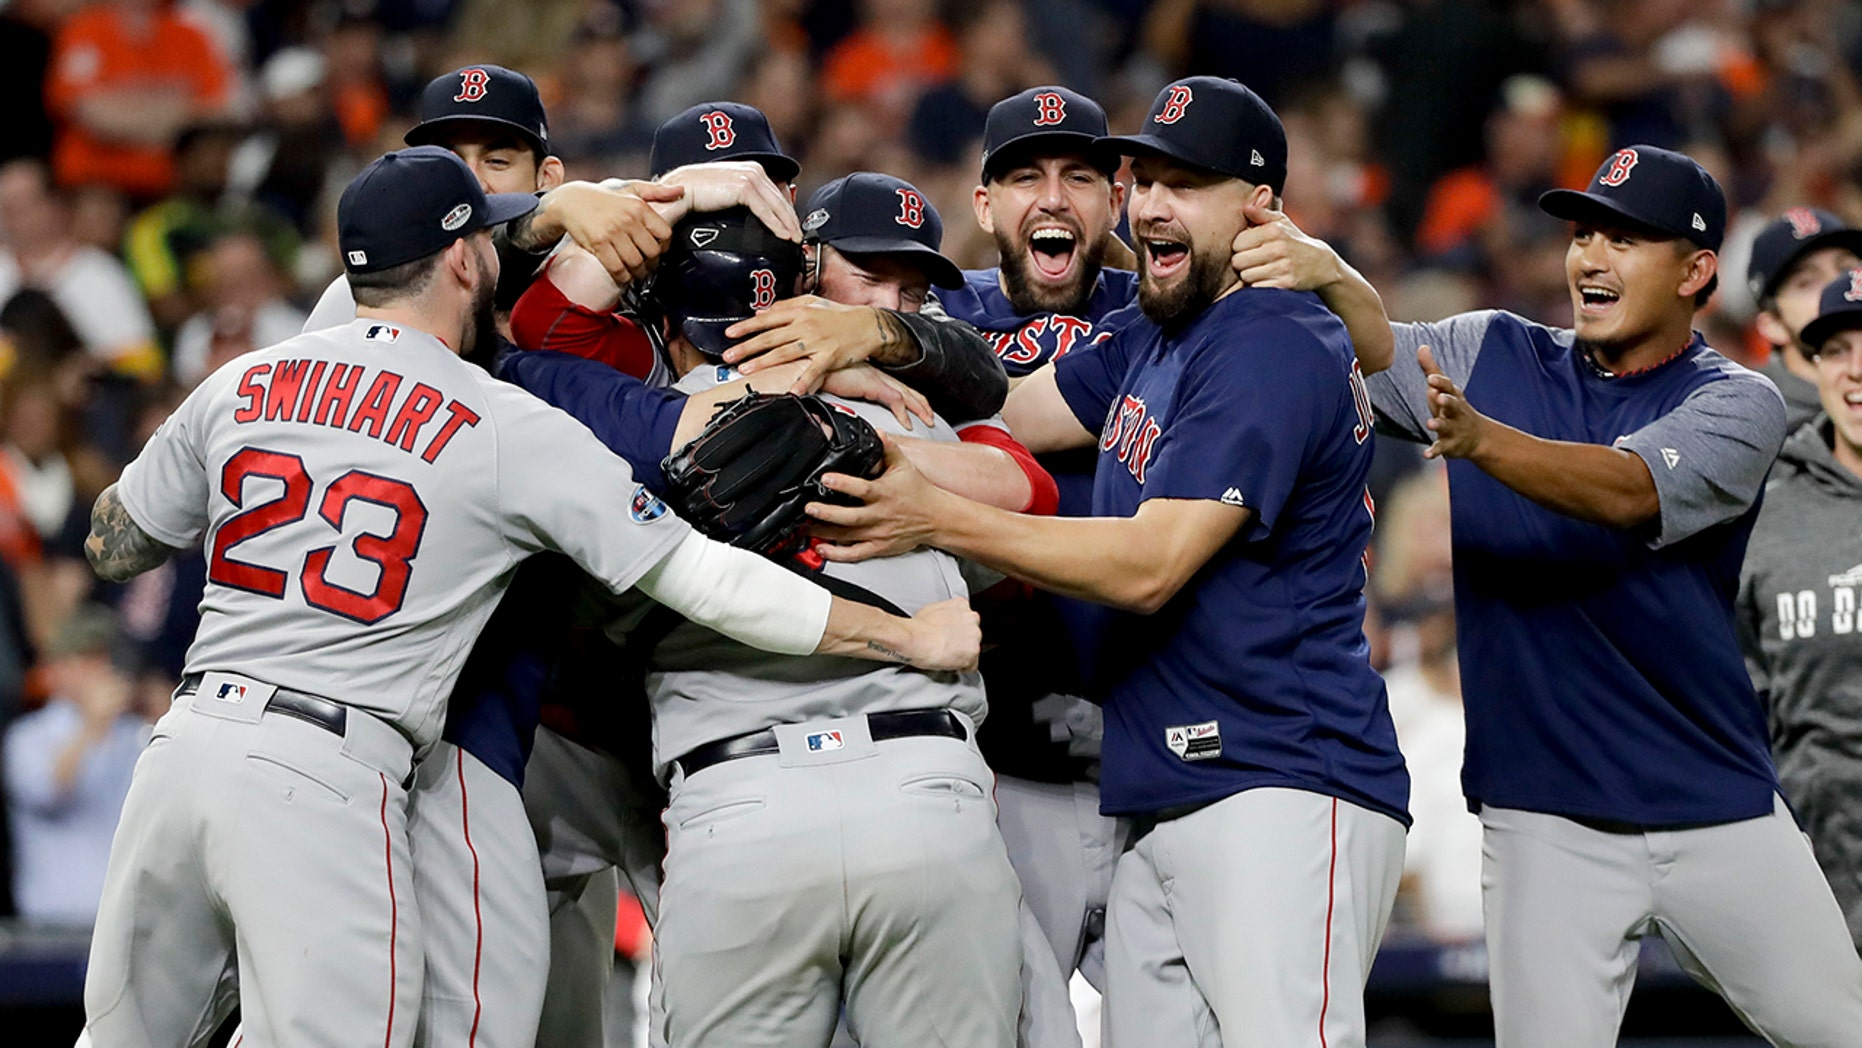 The Boston Red Sox celebrates after winning Game 5 of a baseball American League Championship Series against the Houston Astros on Thursday, Oct. 18, 2018, in Houston.